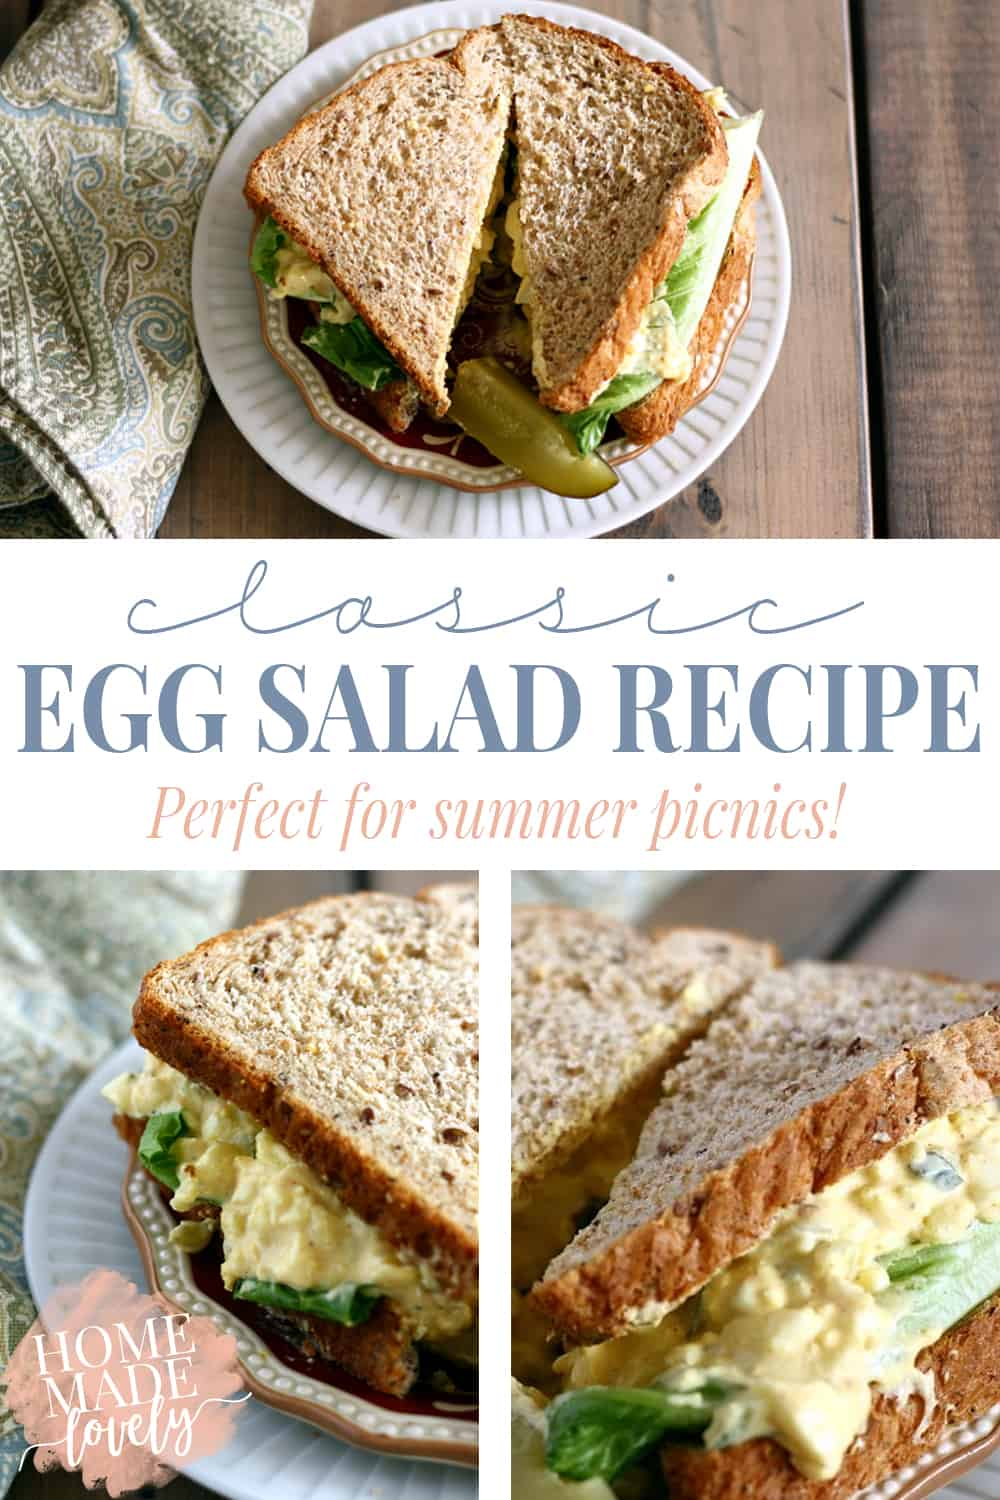 Perfect for summer picnics or family reunion pot luck lunches, this classic egg salad recipe will have you drooling for more!